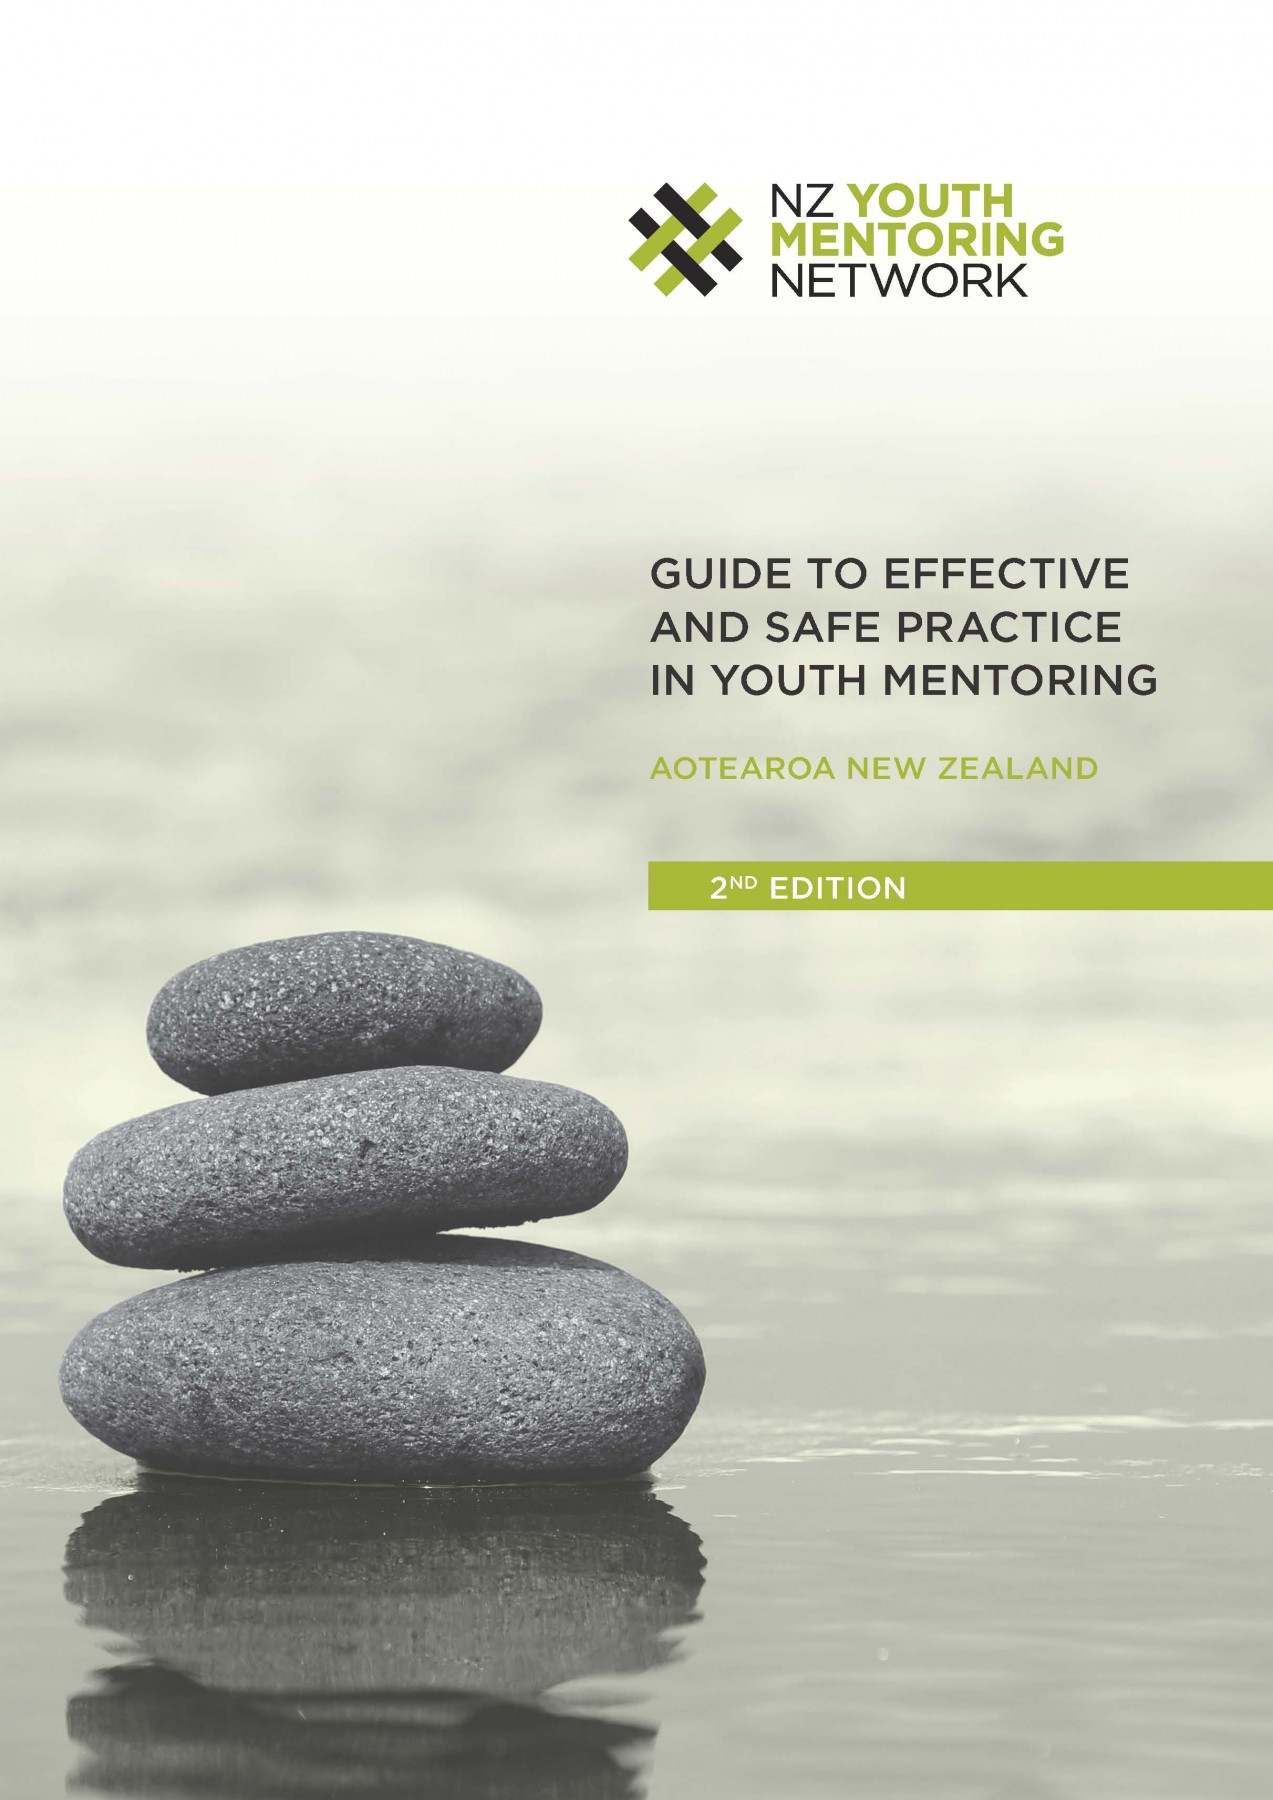 Guide to effective and safe practice in youth mentoring